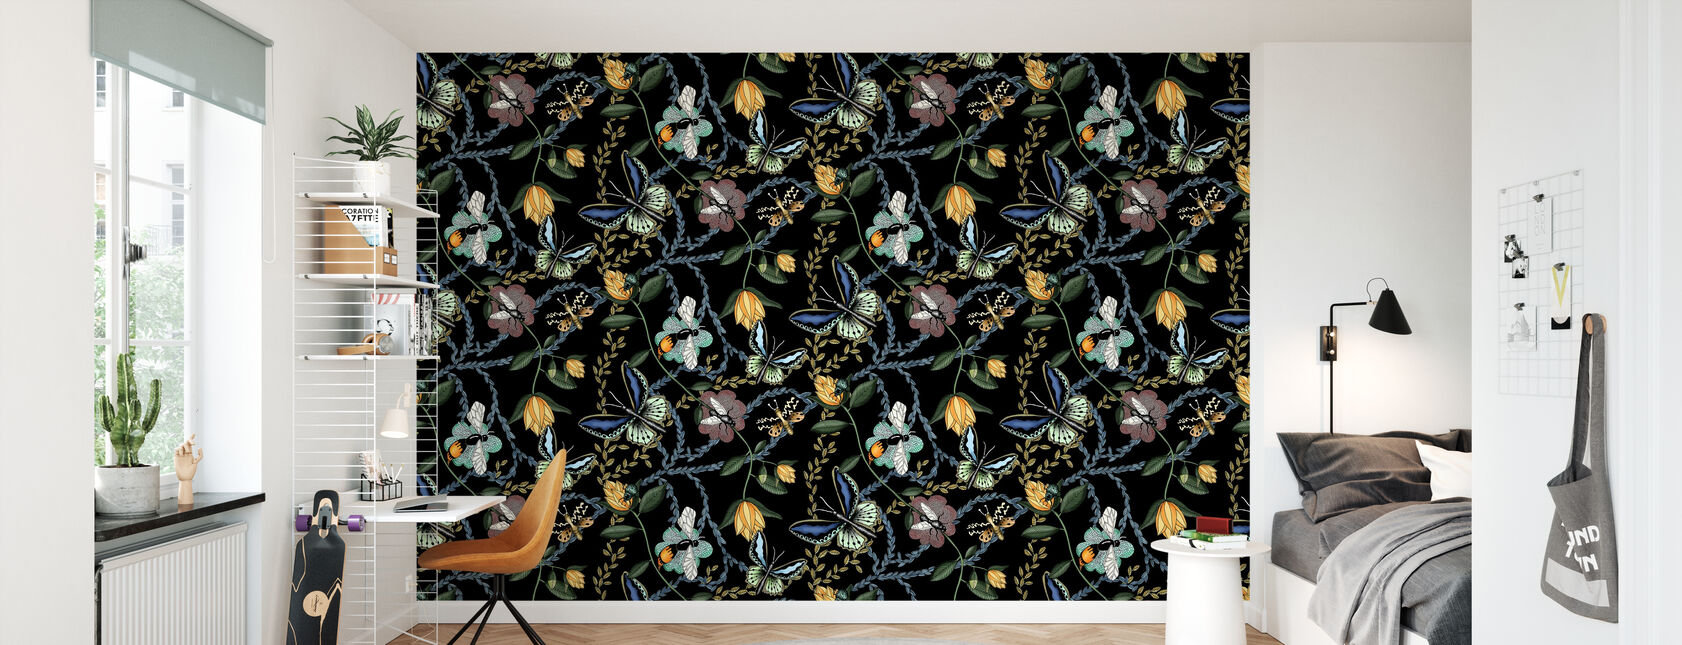 Bugs & Butterflies Black - Large - Wallpaper - Kids Room